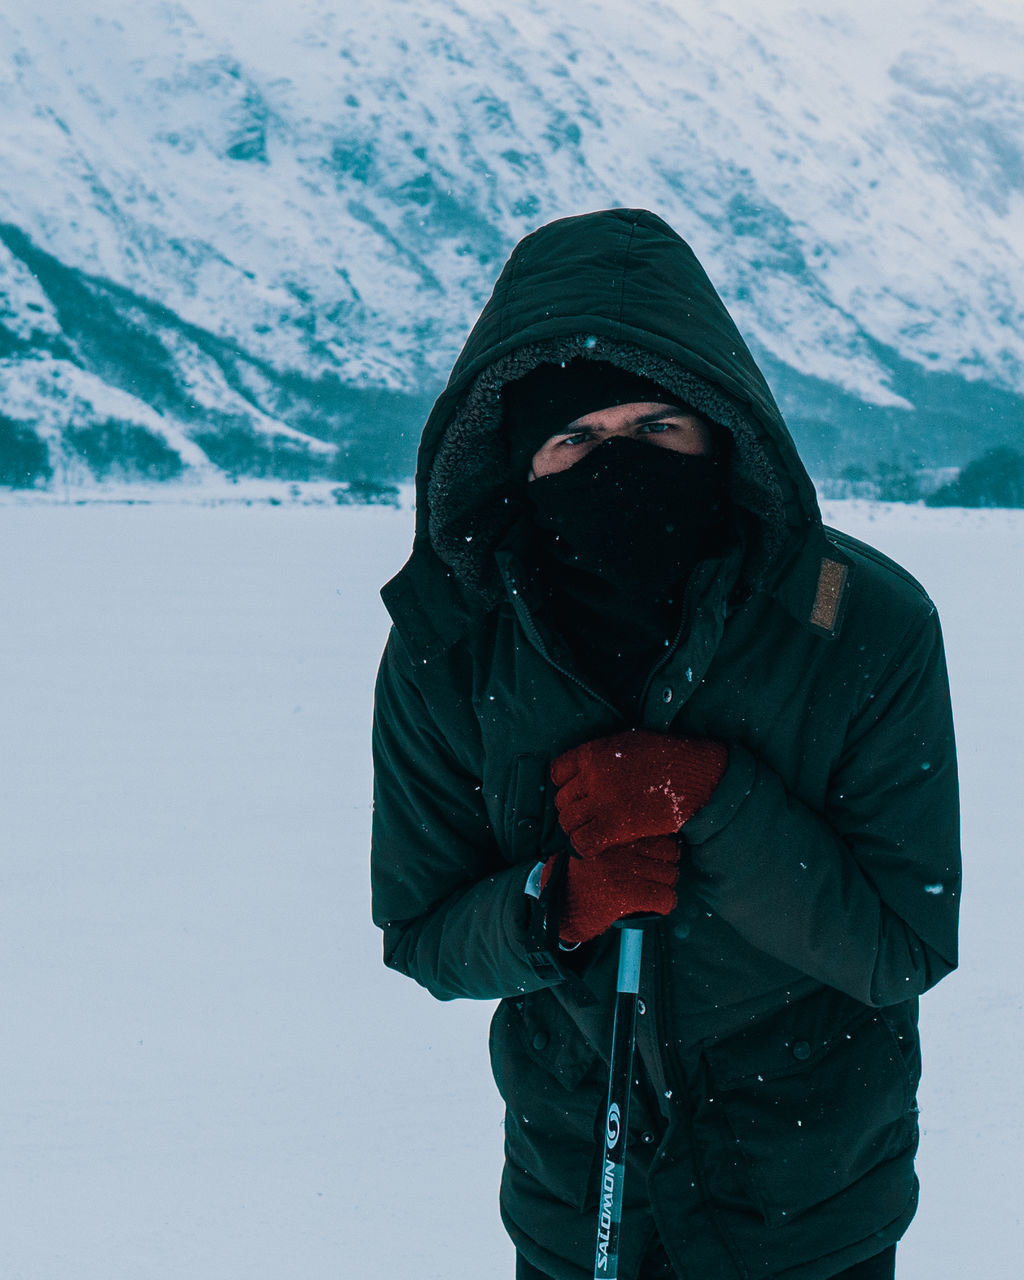 WOMAN WITH UMBRELLA STANDING ON SNOW COVERED MOUNTAIN